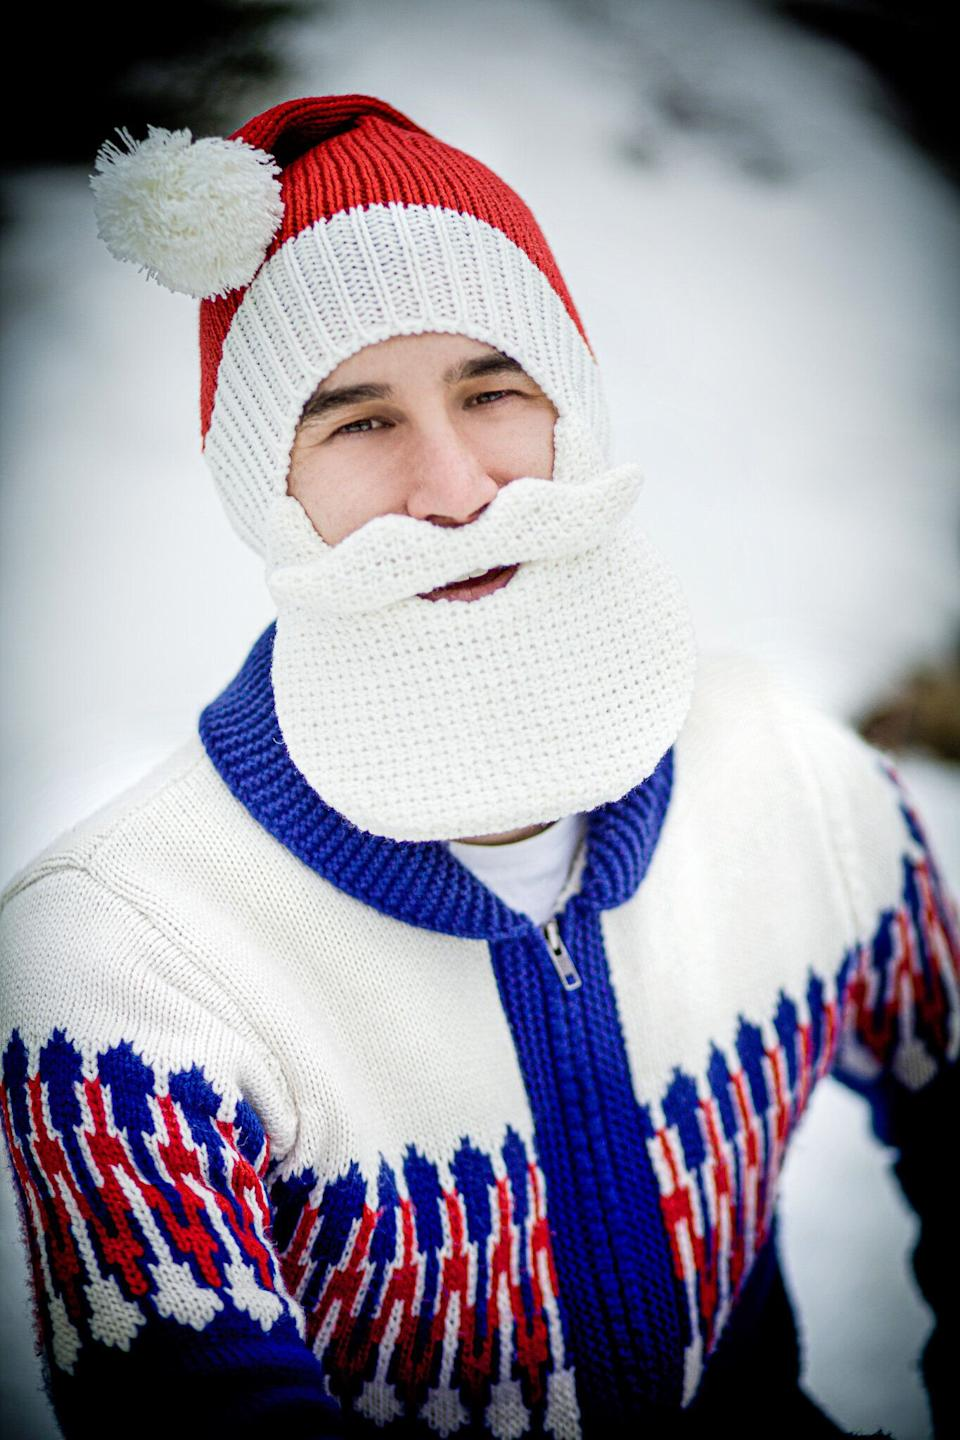 """<a href=""""https://beardhead.com/products/santa-beard-head?variant=17977177091"""" target=""""_blank"""" rel=""""noopener noreferrer"""">A Santa hat and fake beard</a> are good things to have this time of year. But typically, those products aren't made for warmth. This version will keep your face warm all winter long, even after your loved ones tell you """"Christmas is over."""""""